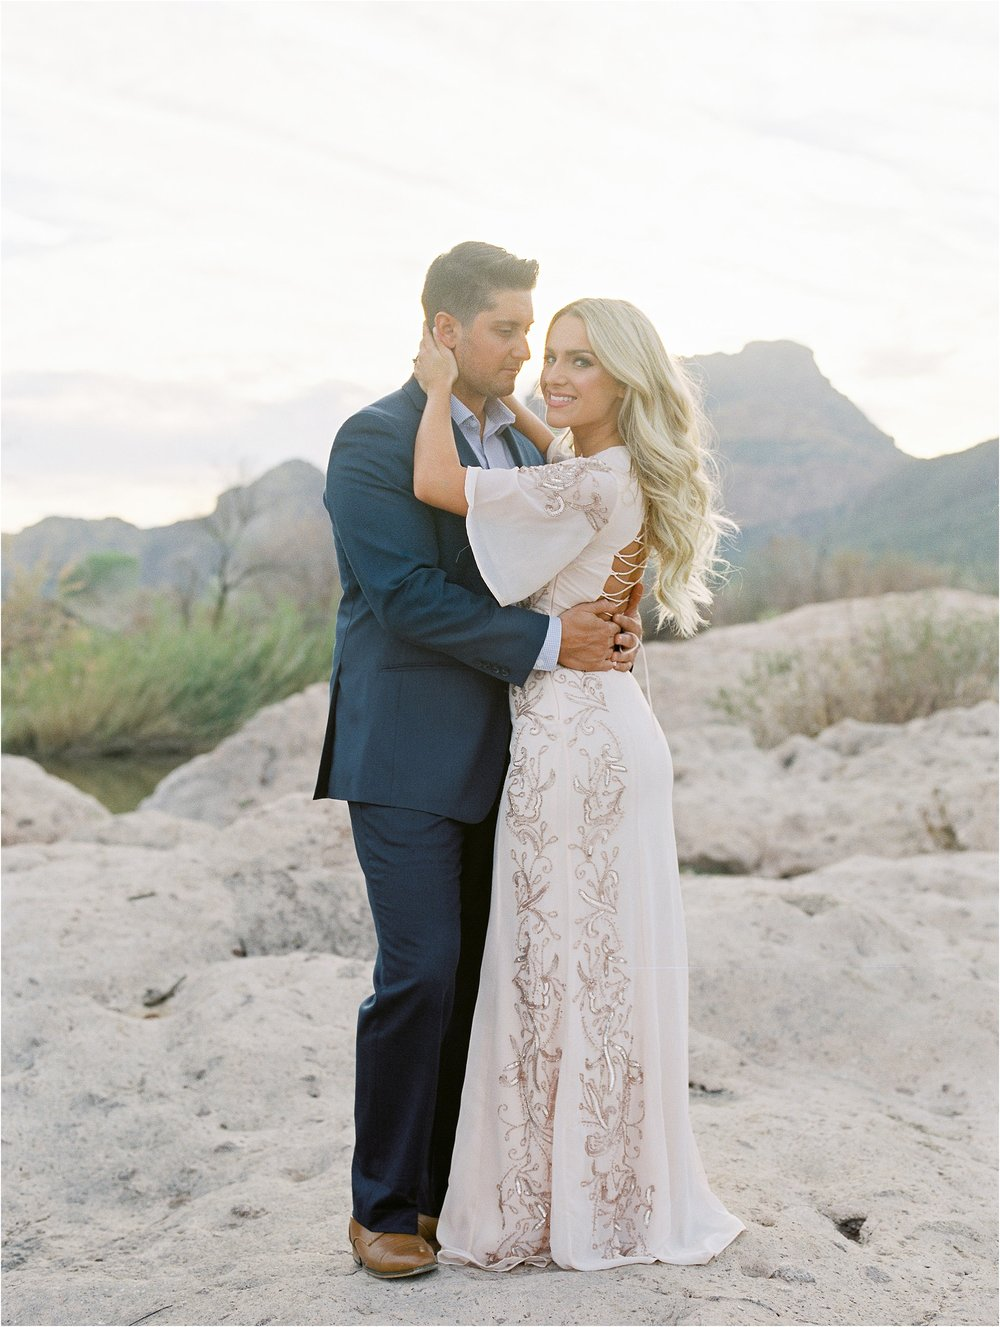 Sarah Jane Photography Film Hybrid Scottsdale Phoenix Arizona Destination Wedding Photographer salt river asos engagement britney tj_0015.jpg